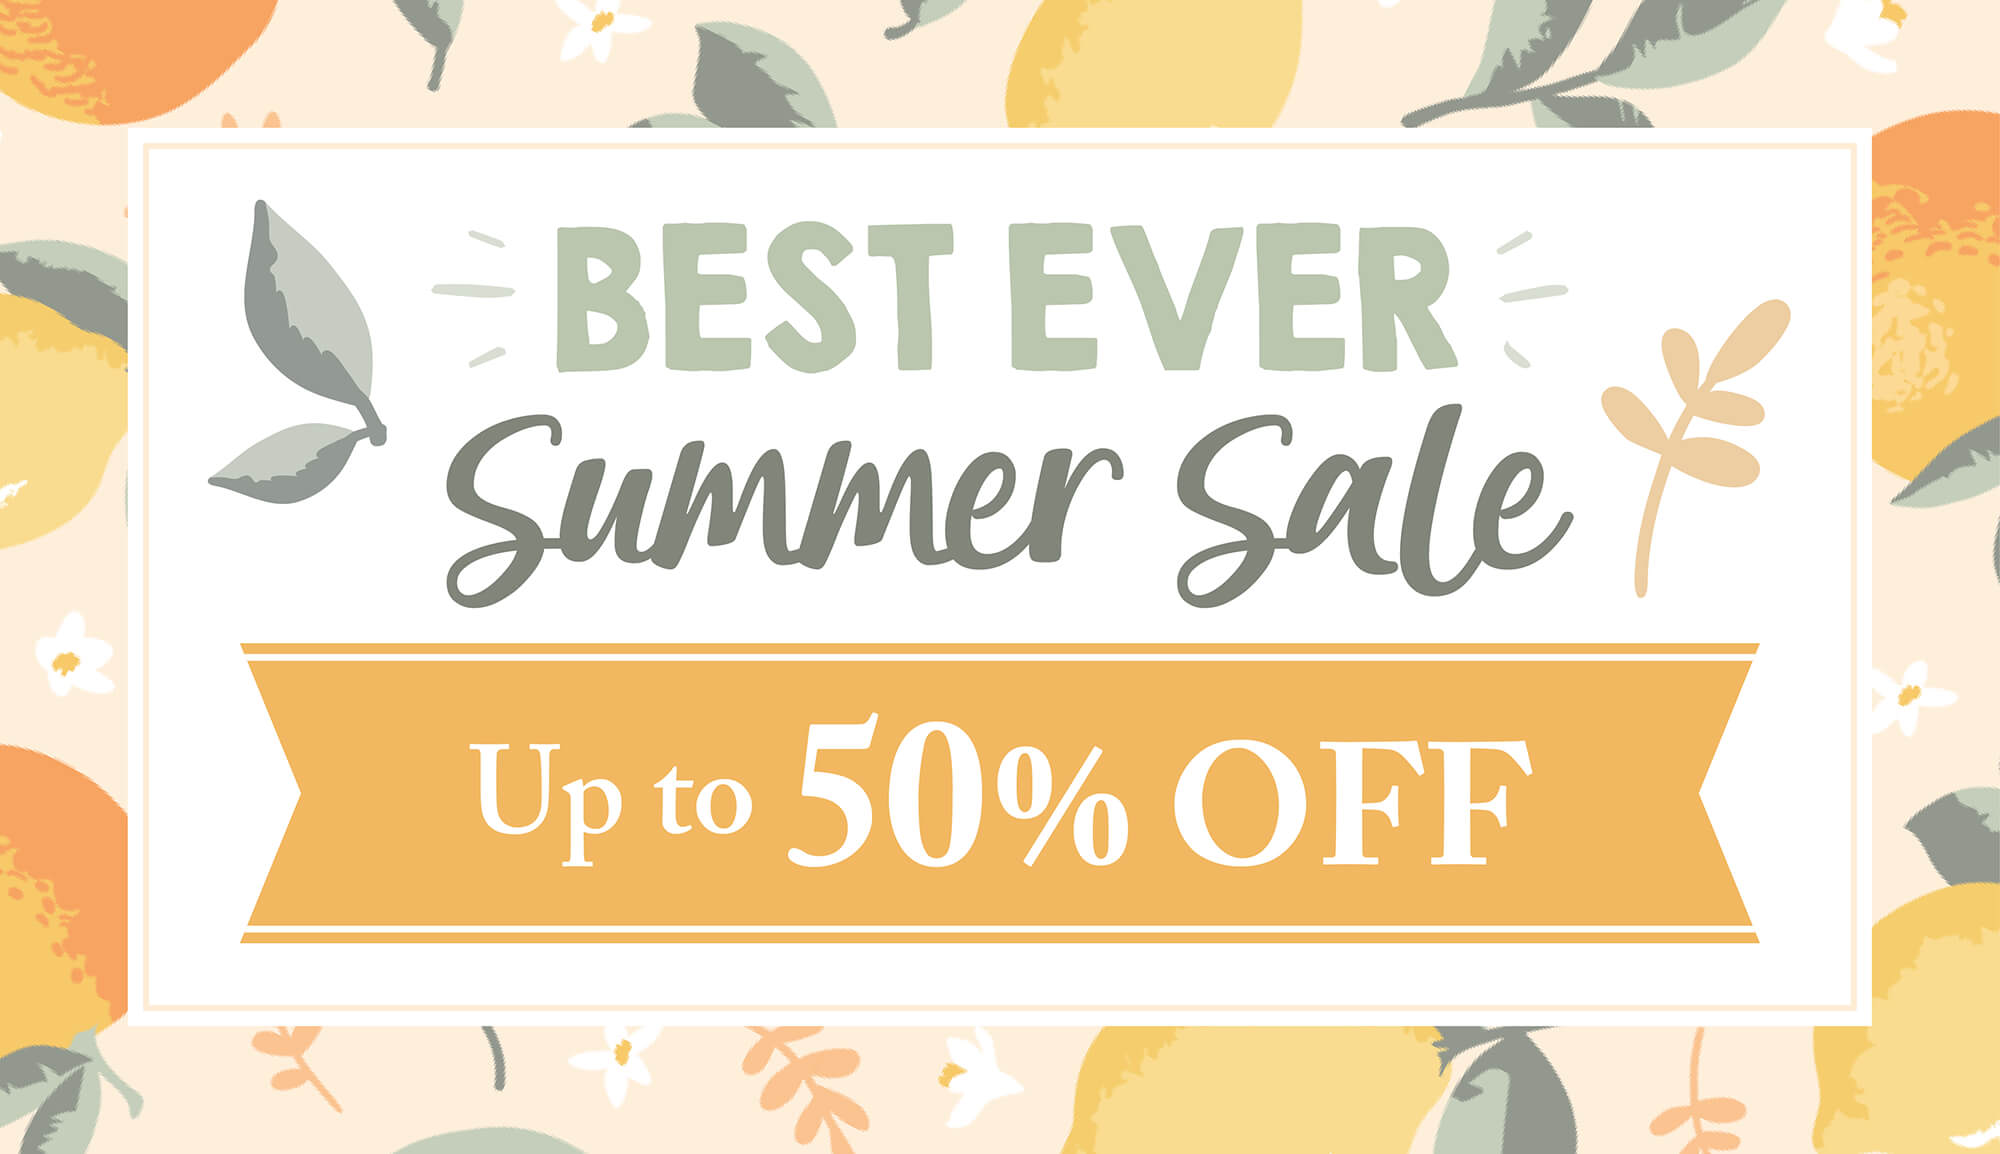 UK_Summer_Sale_2021_MOBILE_CATEGORY_BANNER_Up_to_50__2x